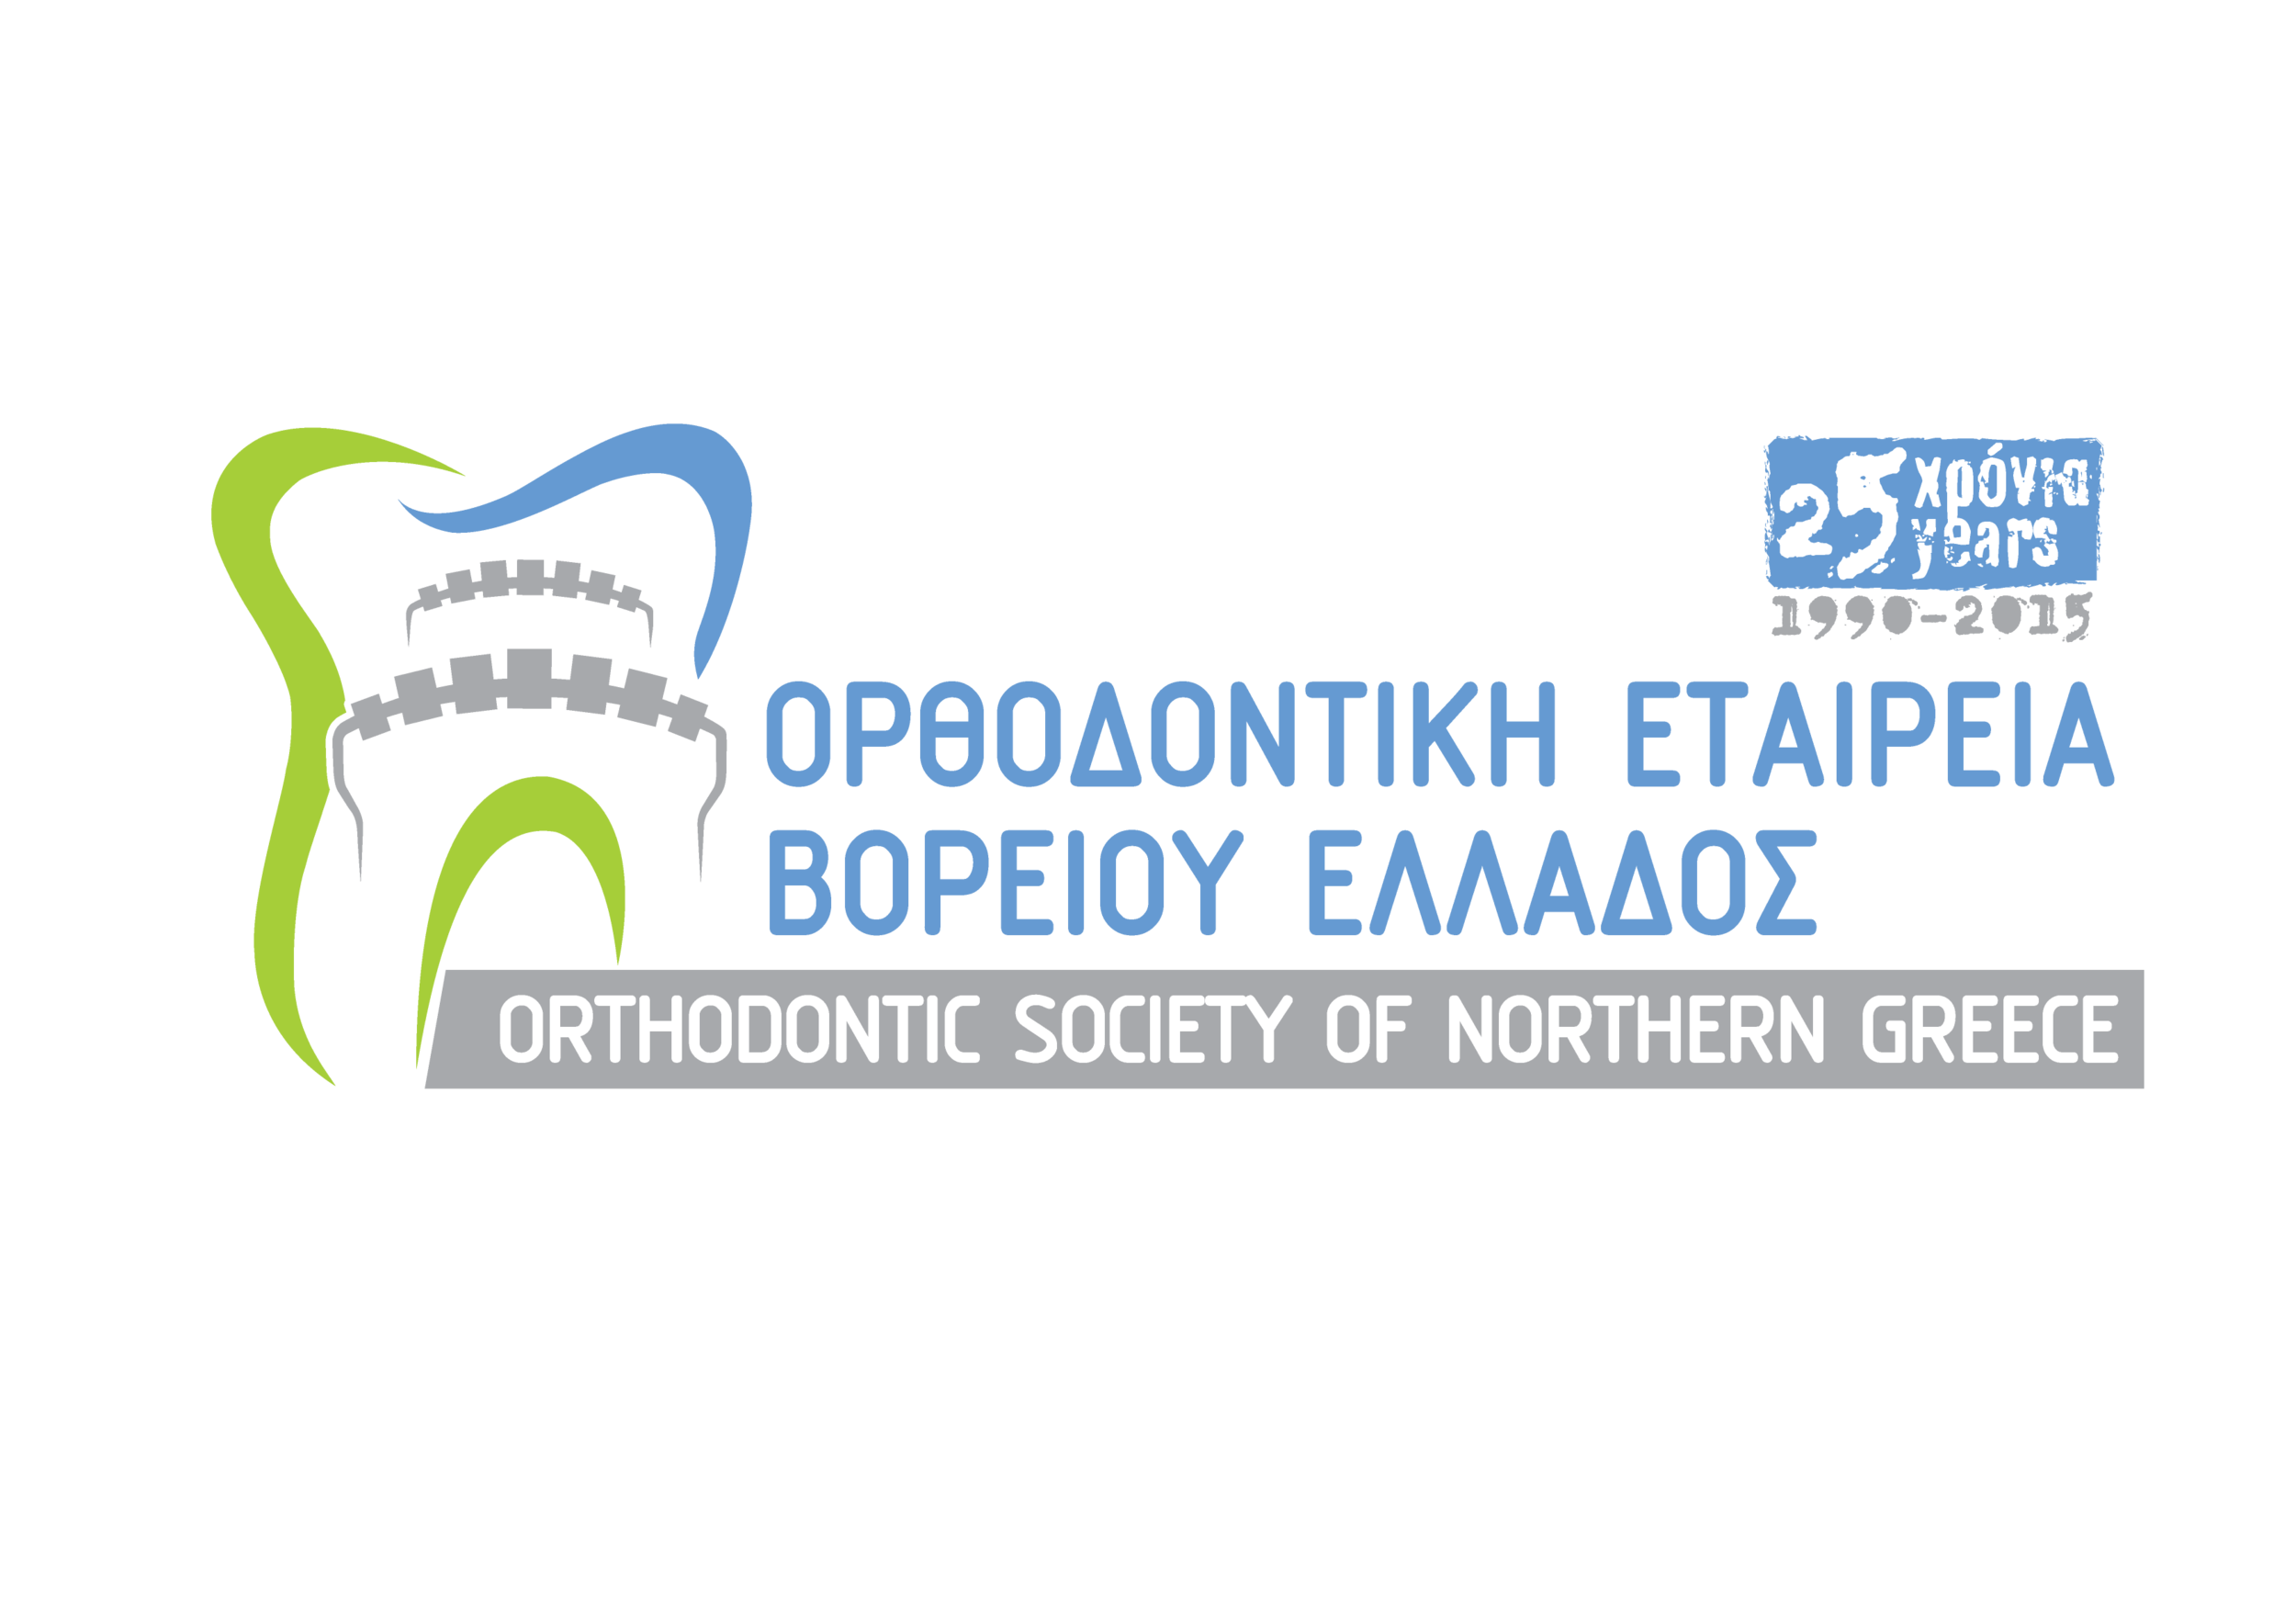 Orthodontic Society of Northern Greece